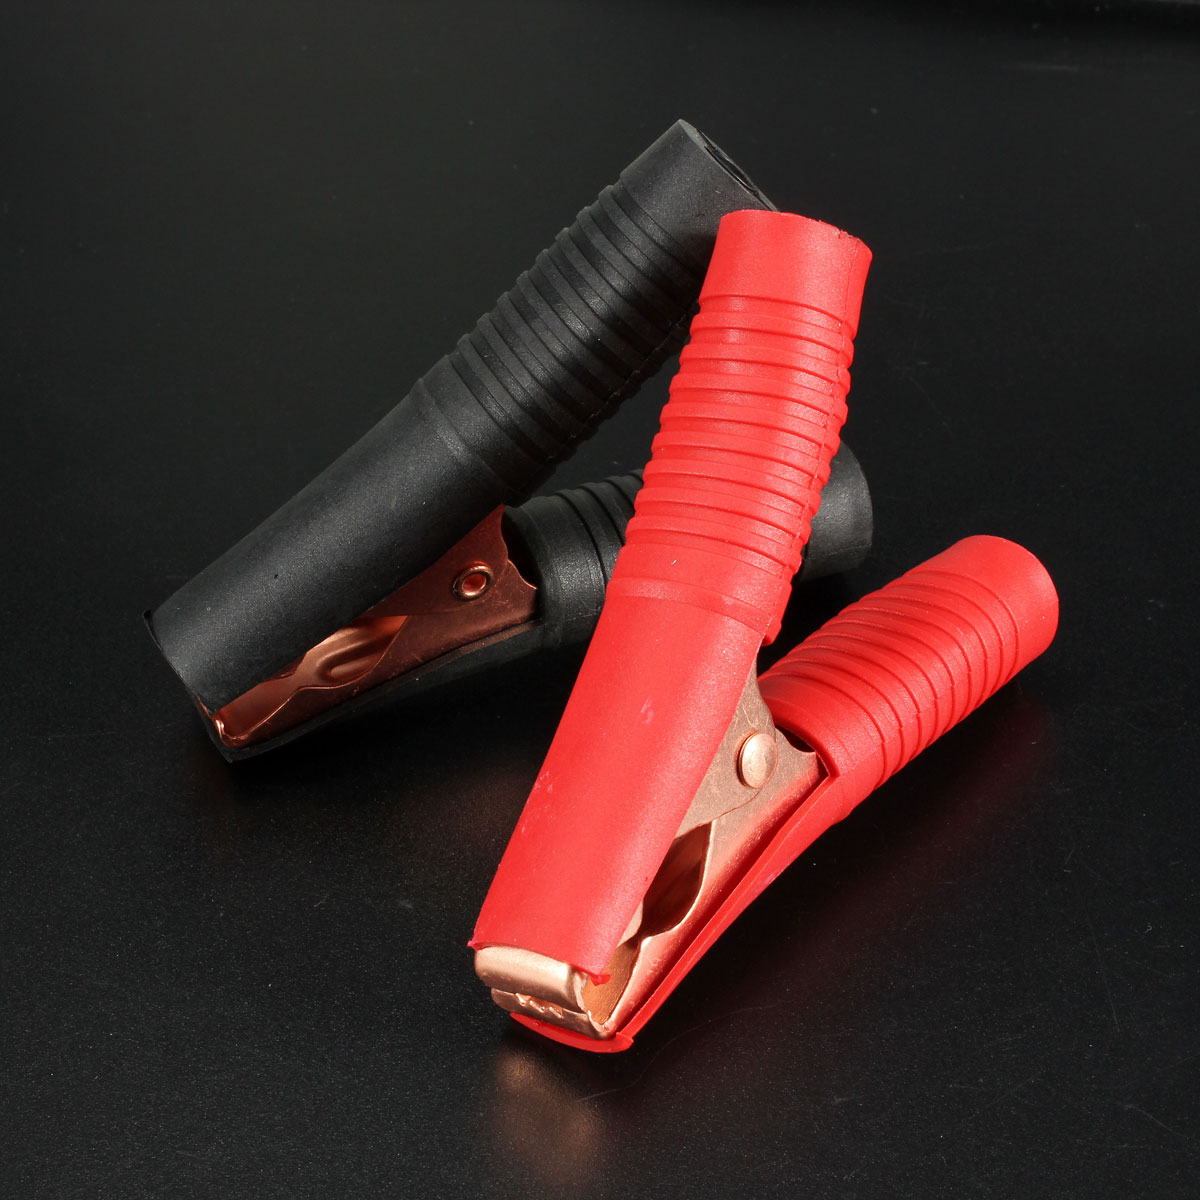 Buy 2pcs Alligator Clip Battery Test Lead Clips 100a Red